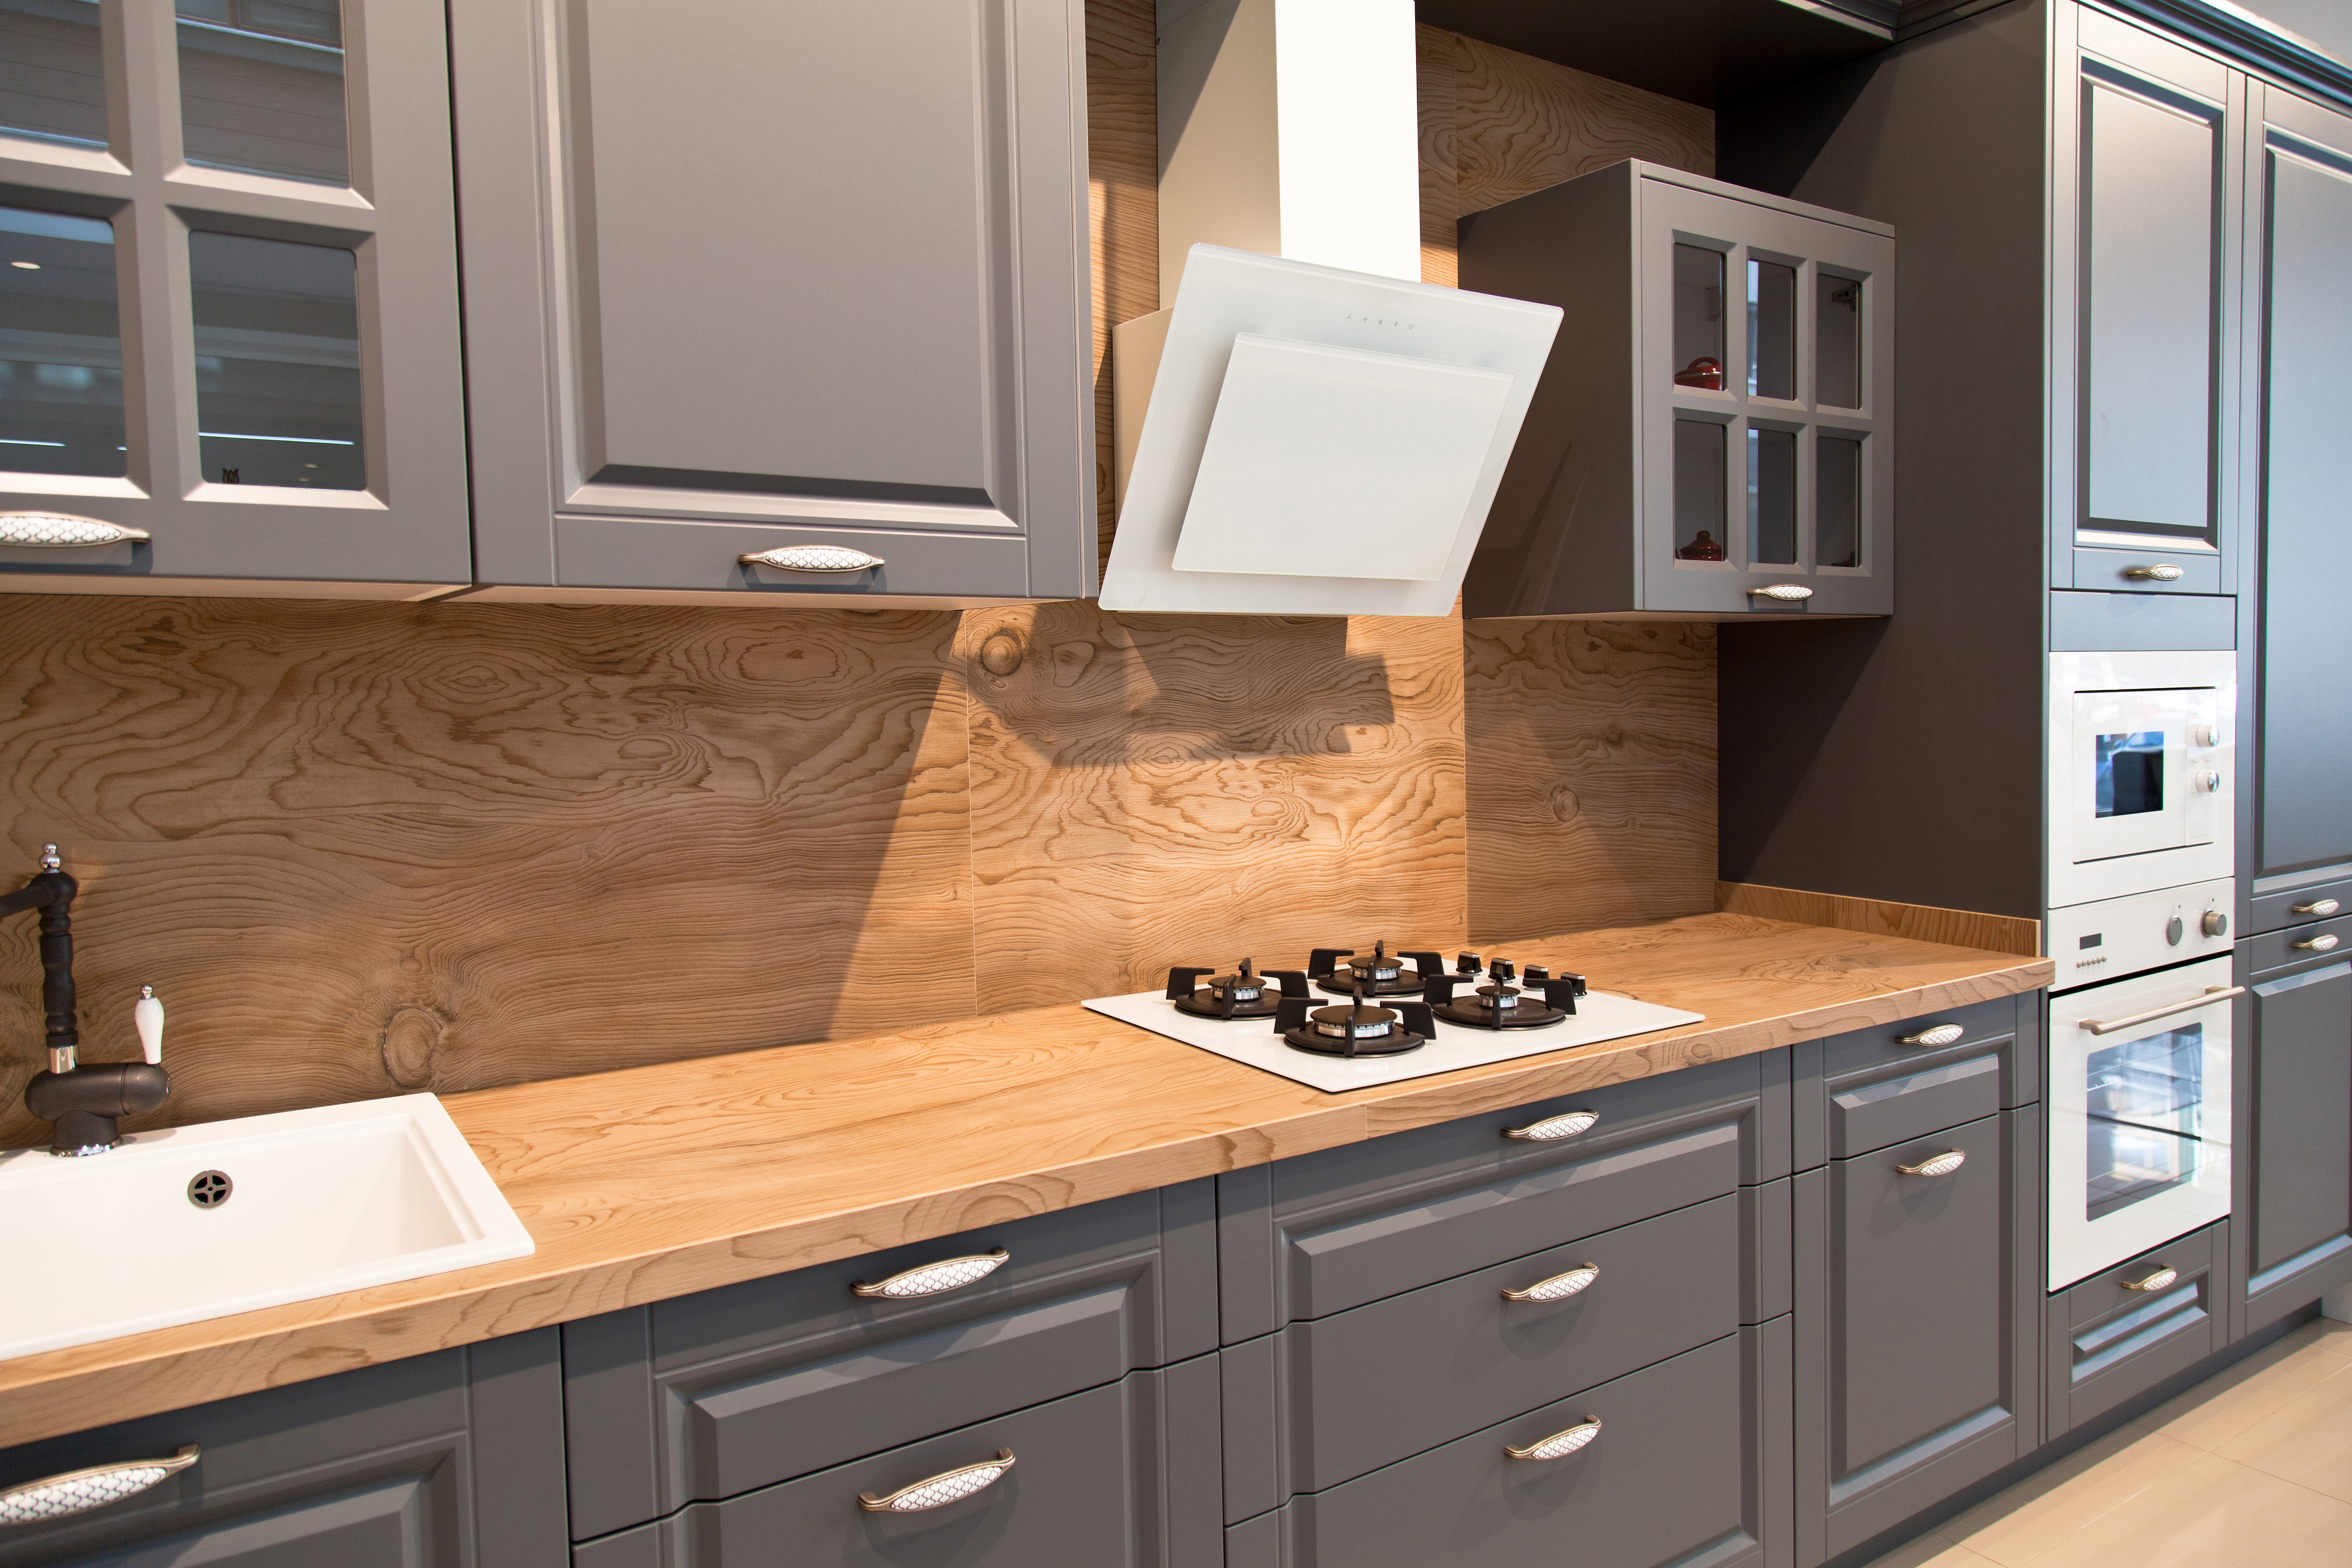 The Best Hardware To Use For Grey Shaker Cabinets Best Online Cabinets,Amazing Places Most Beautiful Places In The World To Travel